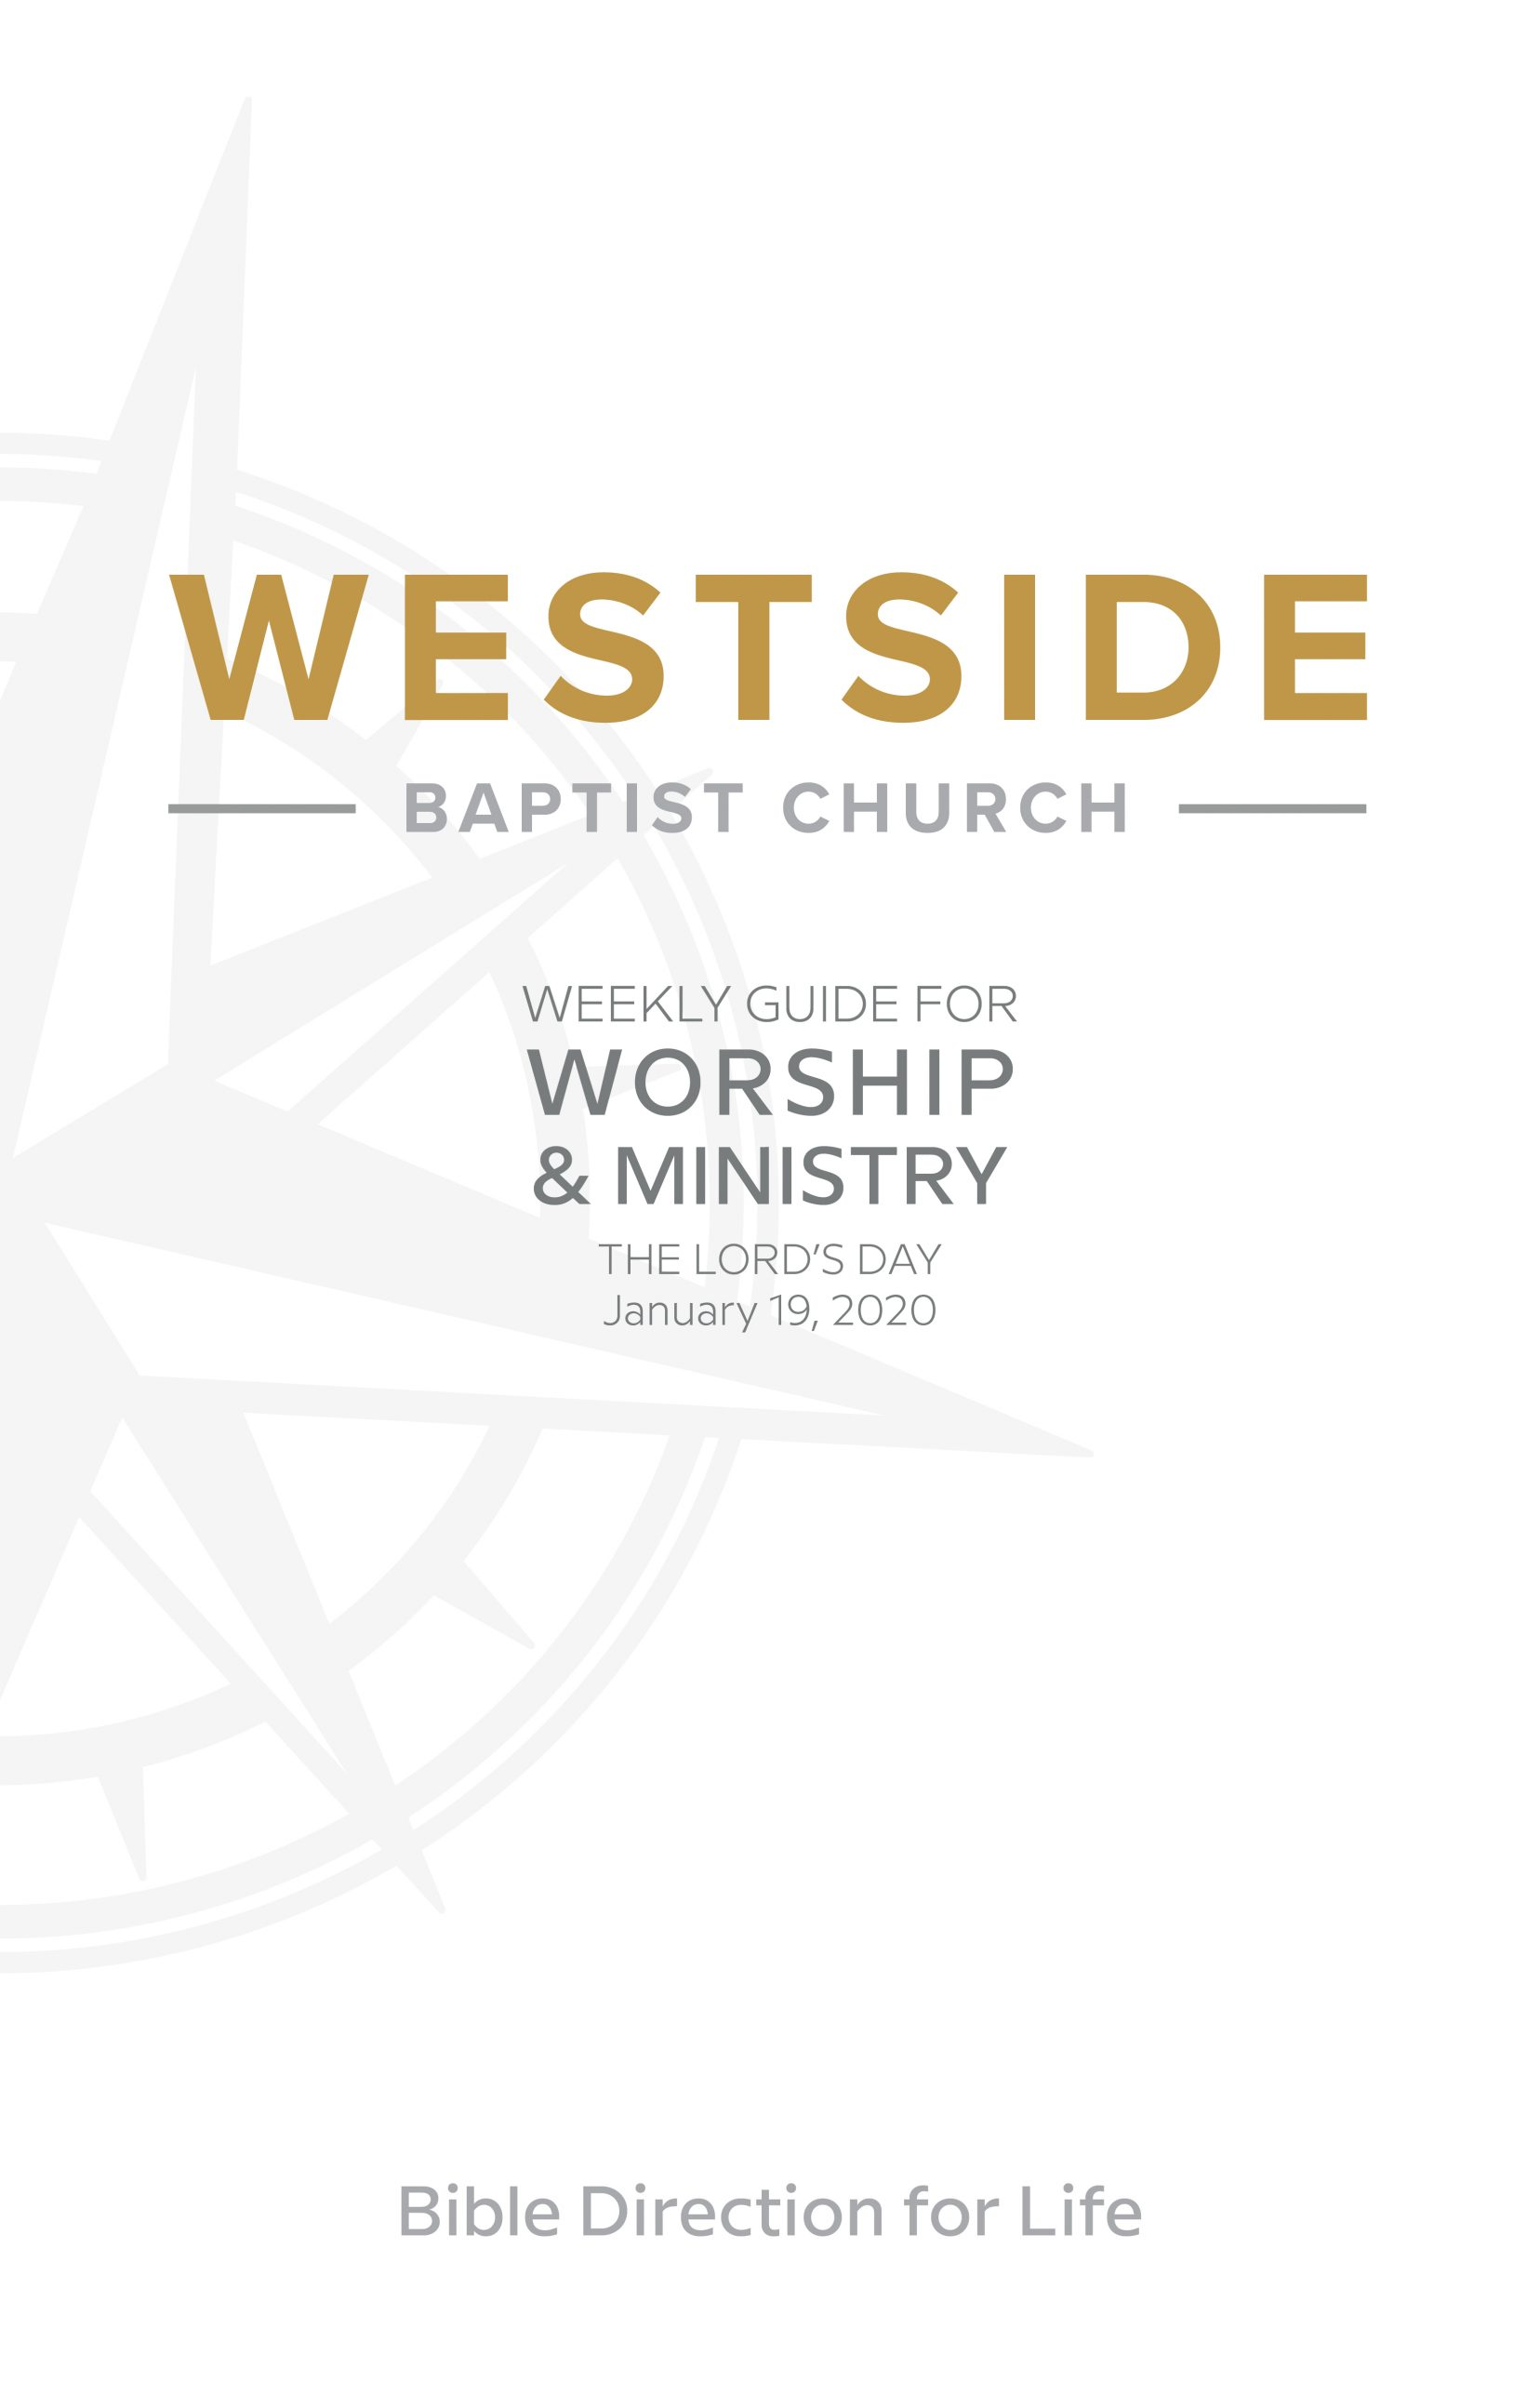 Weekly Guide for Worship and Ministry—January 19